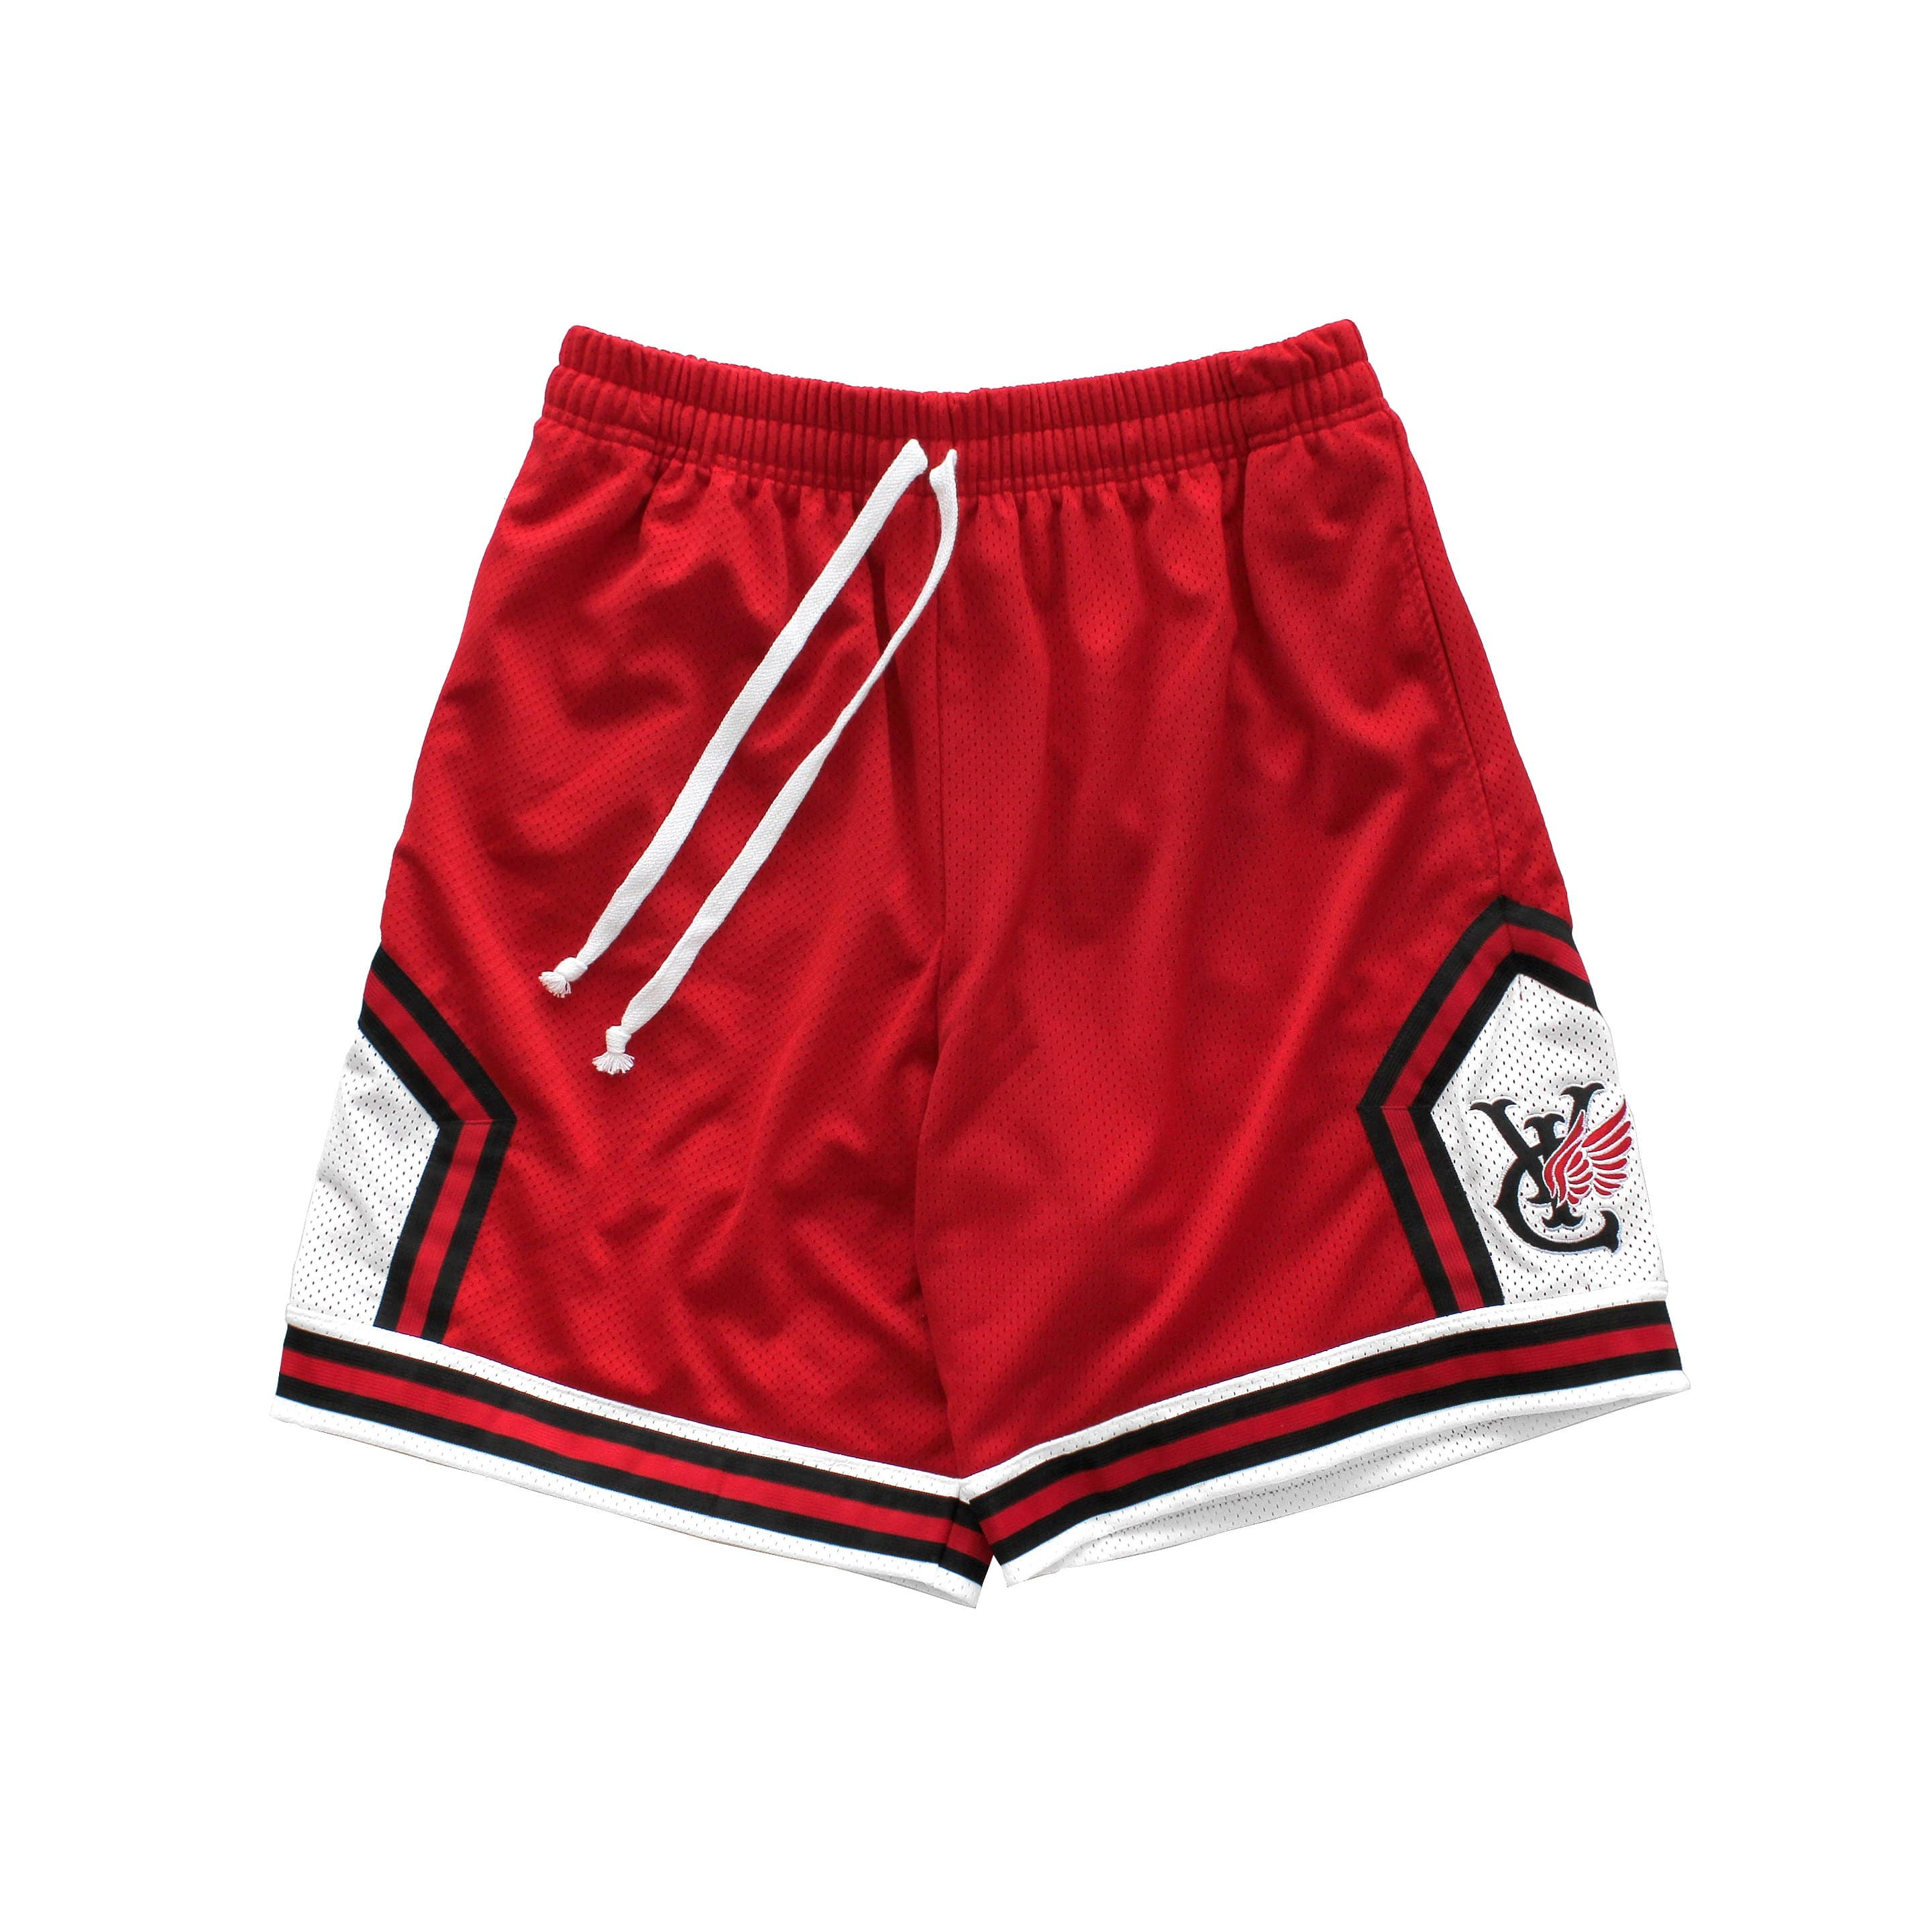 WING BASKETBALL SHORTS - RED